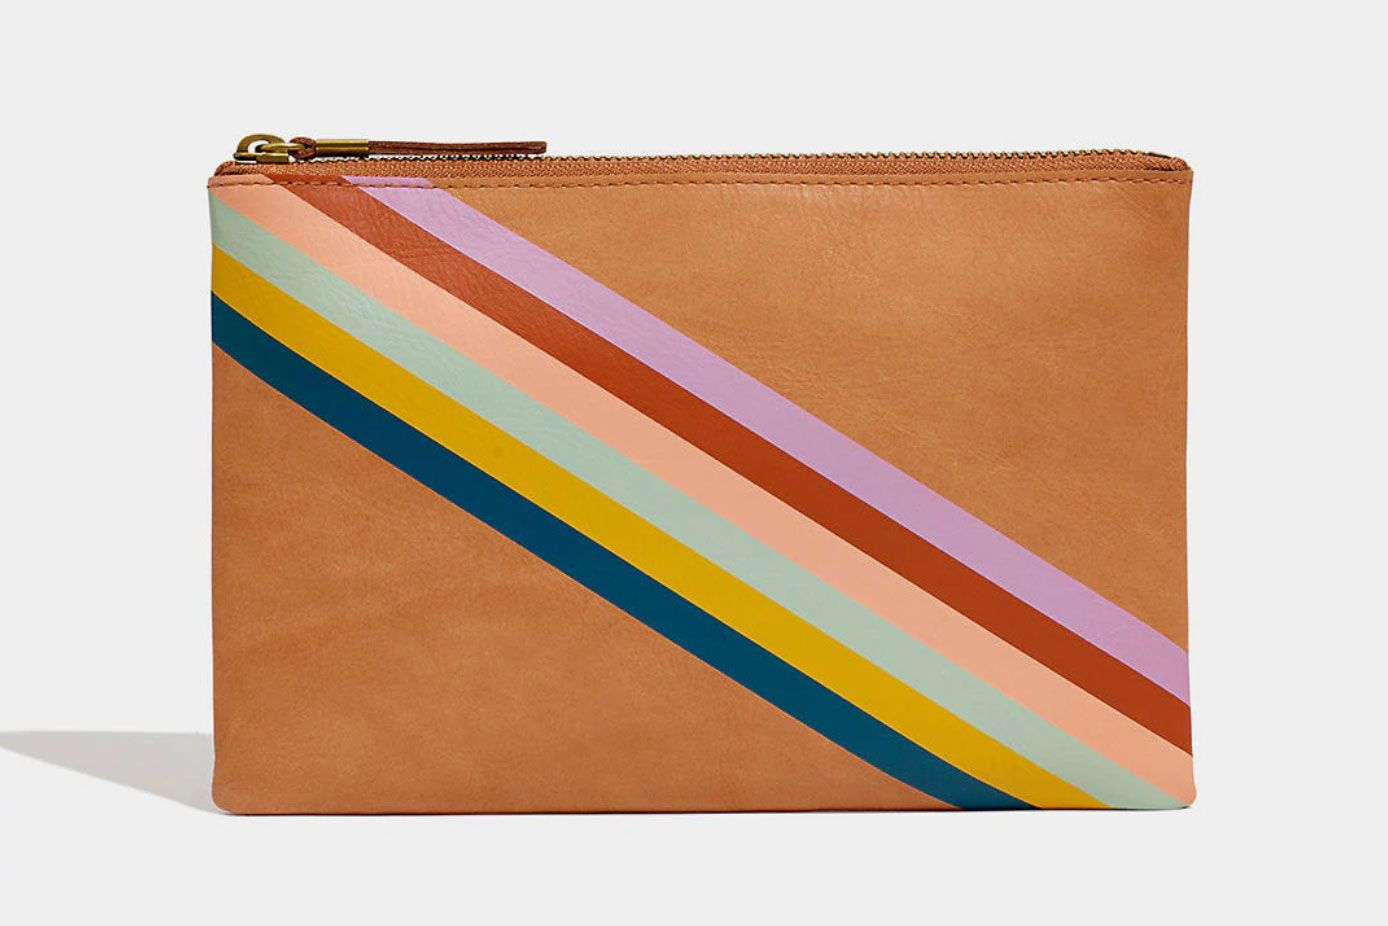 Madewell The Leather Pouch Clutch: Rainbow-Striped Edition